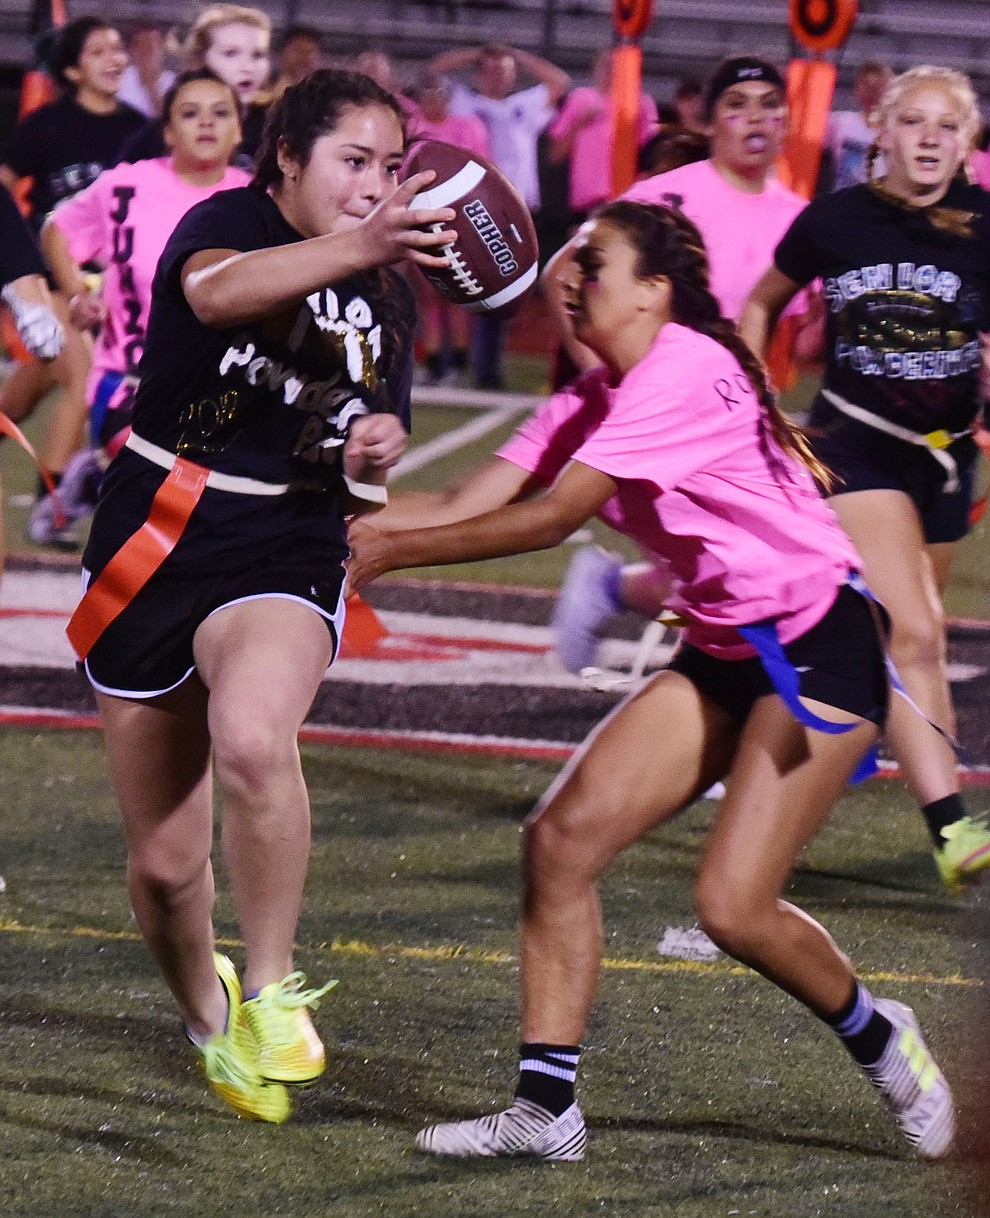 Senior Alejandra Ramirez makes a long runback as the seniors played the juniors in Bradshaw Mountain's annual Powderpuff football game Wednesday in Prescott Valley. The juniors won a close fought game 12-6 despite the seniors last minute heroic comeback attempt. (Les Stukenberg/Courier).